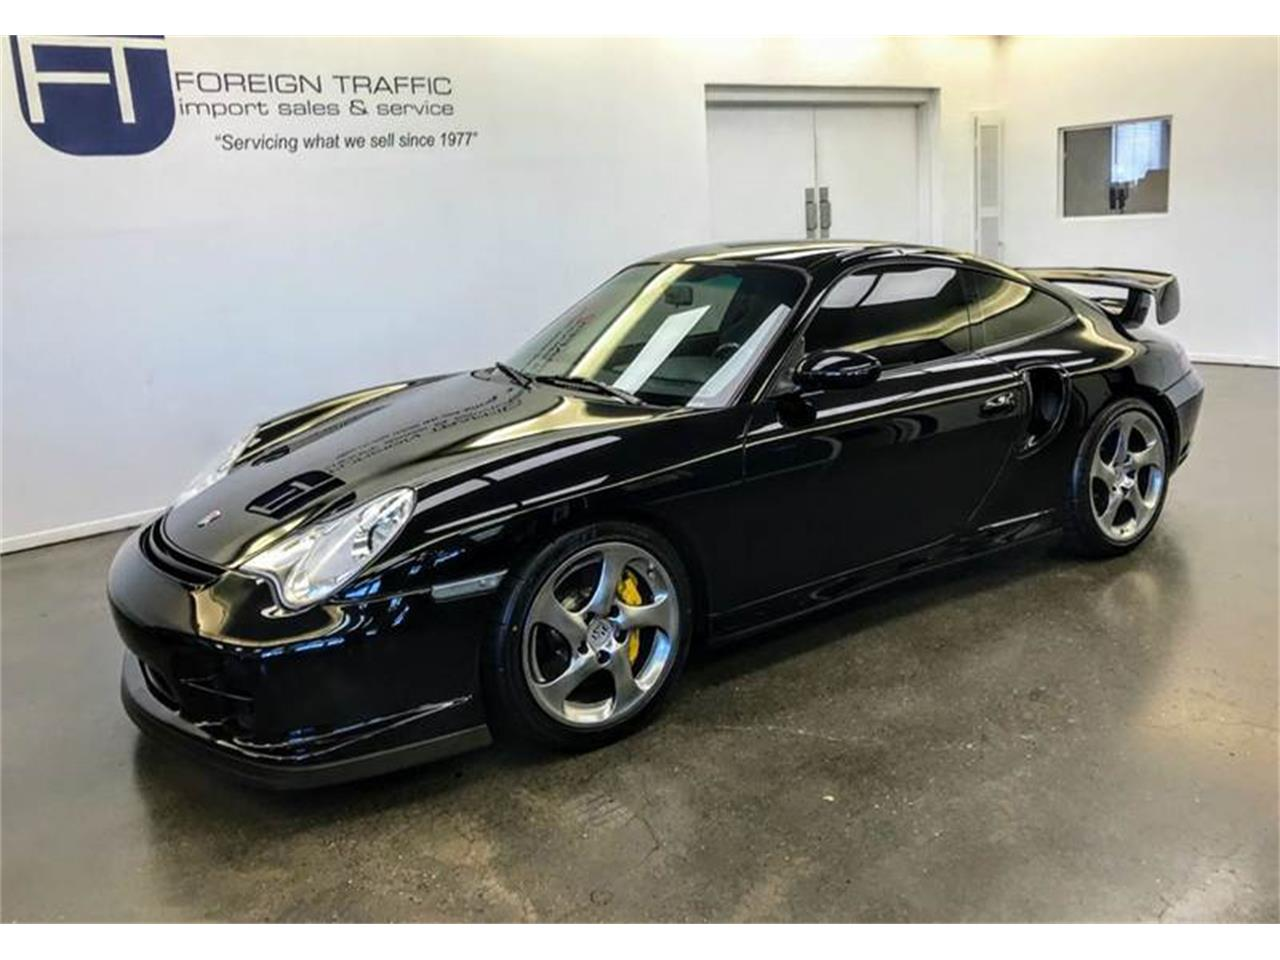 Large Picture of '02 Porsche 911 Offered by Foreign Traffic Import Sales & Service - MFQA